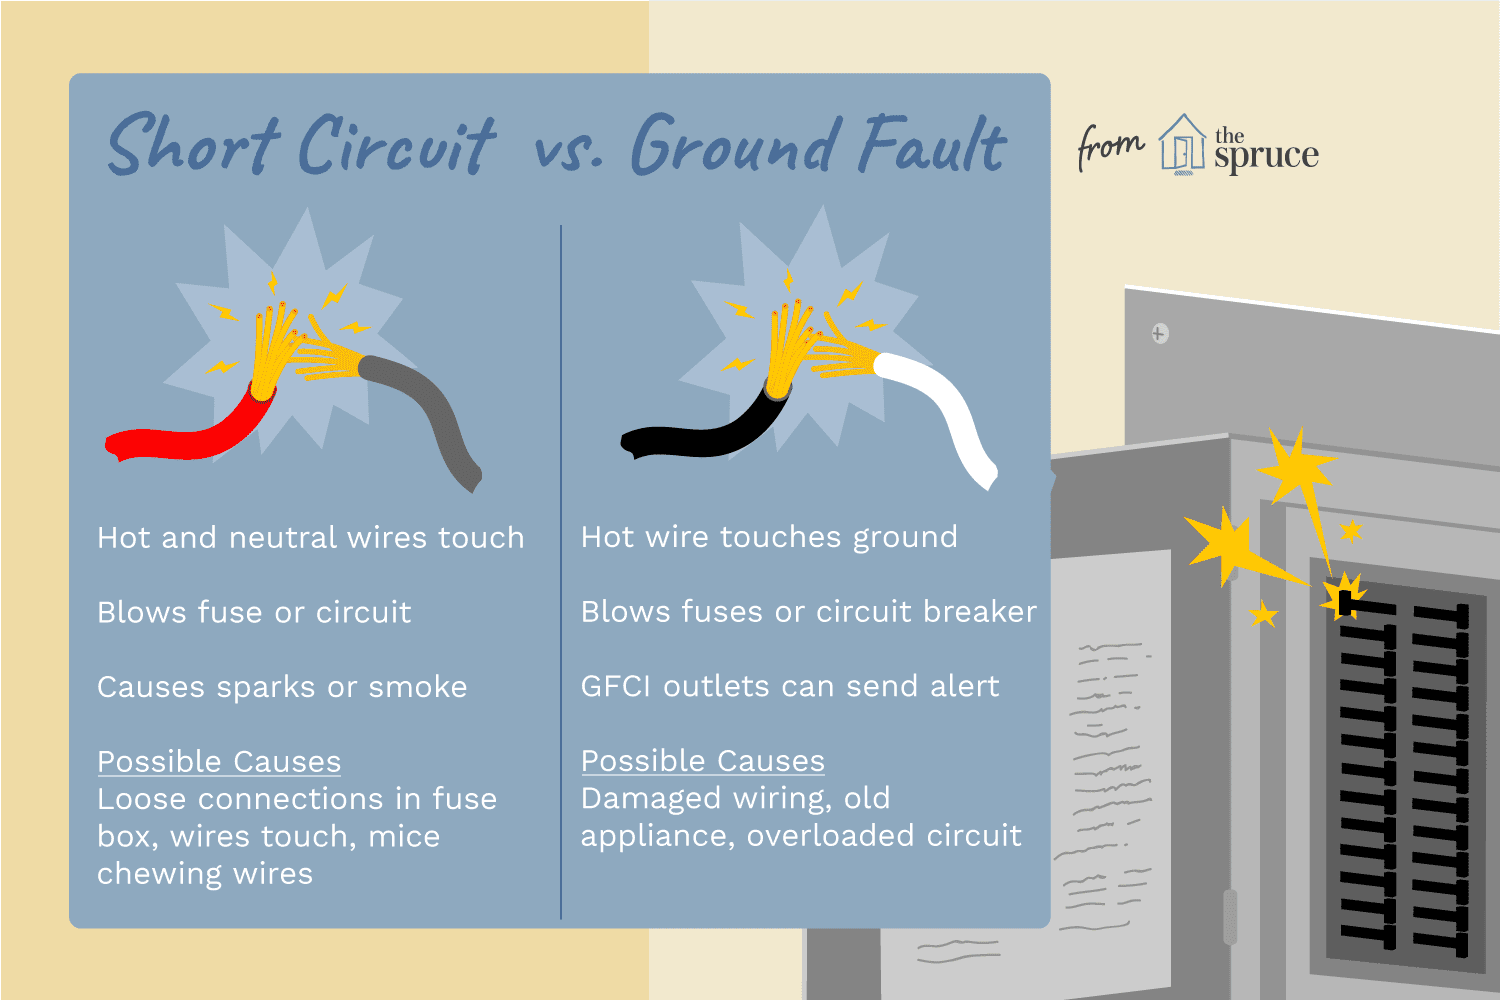 Short Circuit vs. Ground Fault on ground fault relay wiring diagram, ground fault indicator wiring diagram, ground fault interrupter circuit breaker, arc fault wiring diagram, ground fault interrupter cable, ground fault breaker wiring diagram,